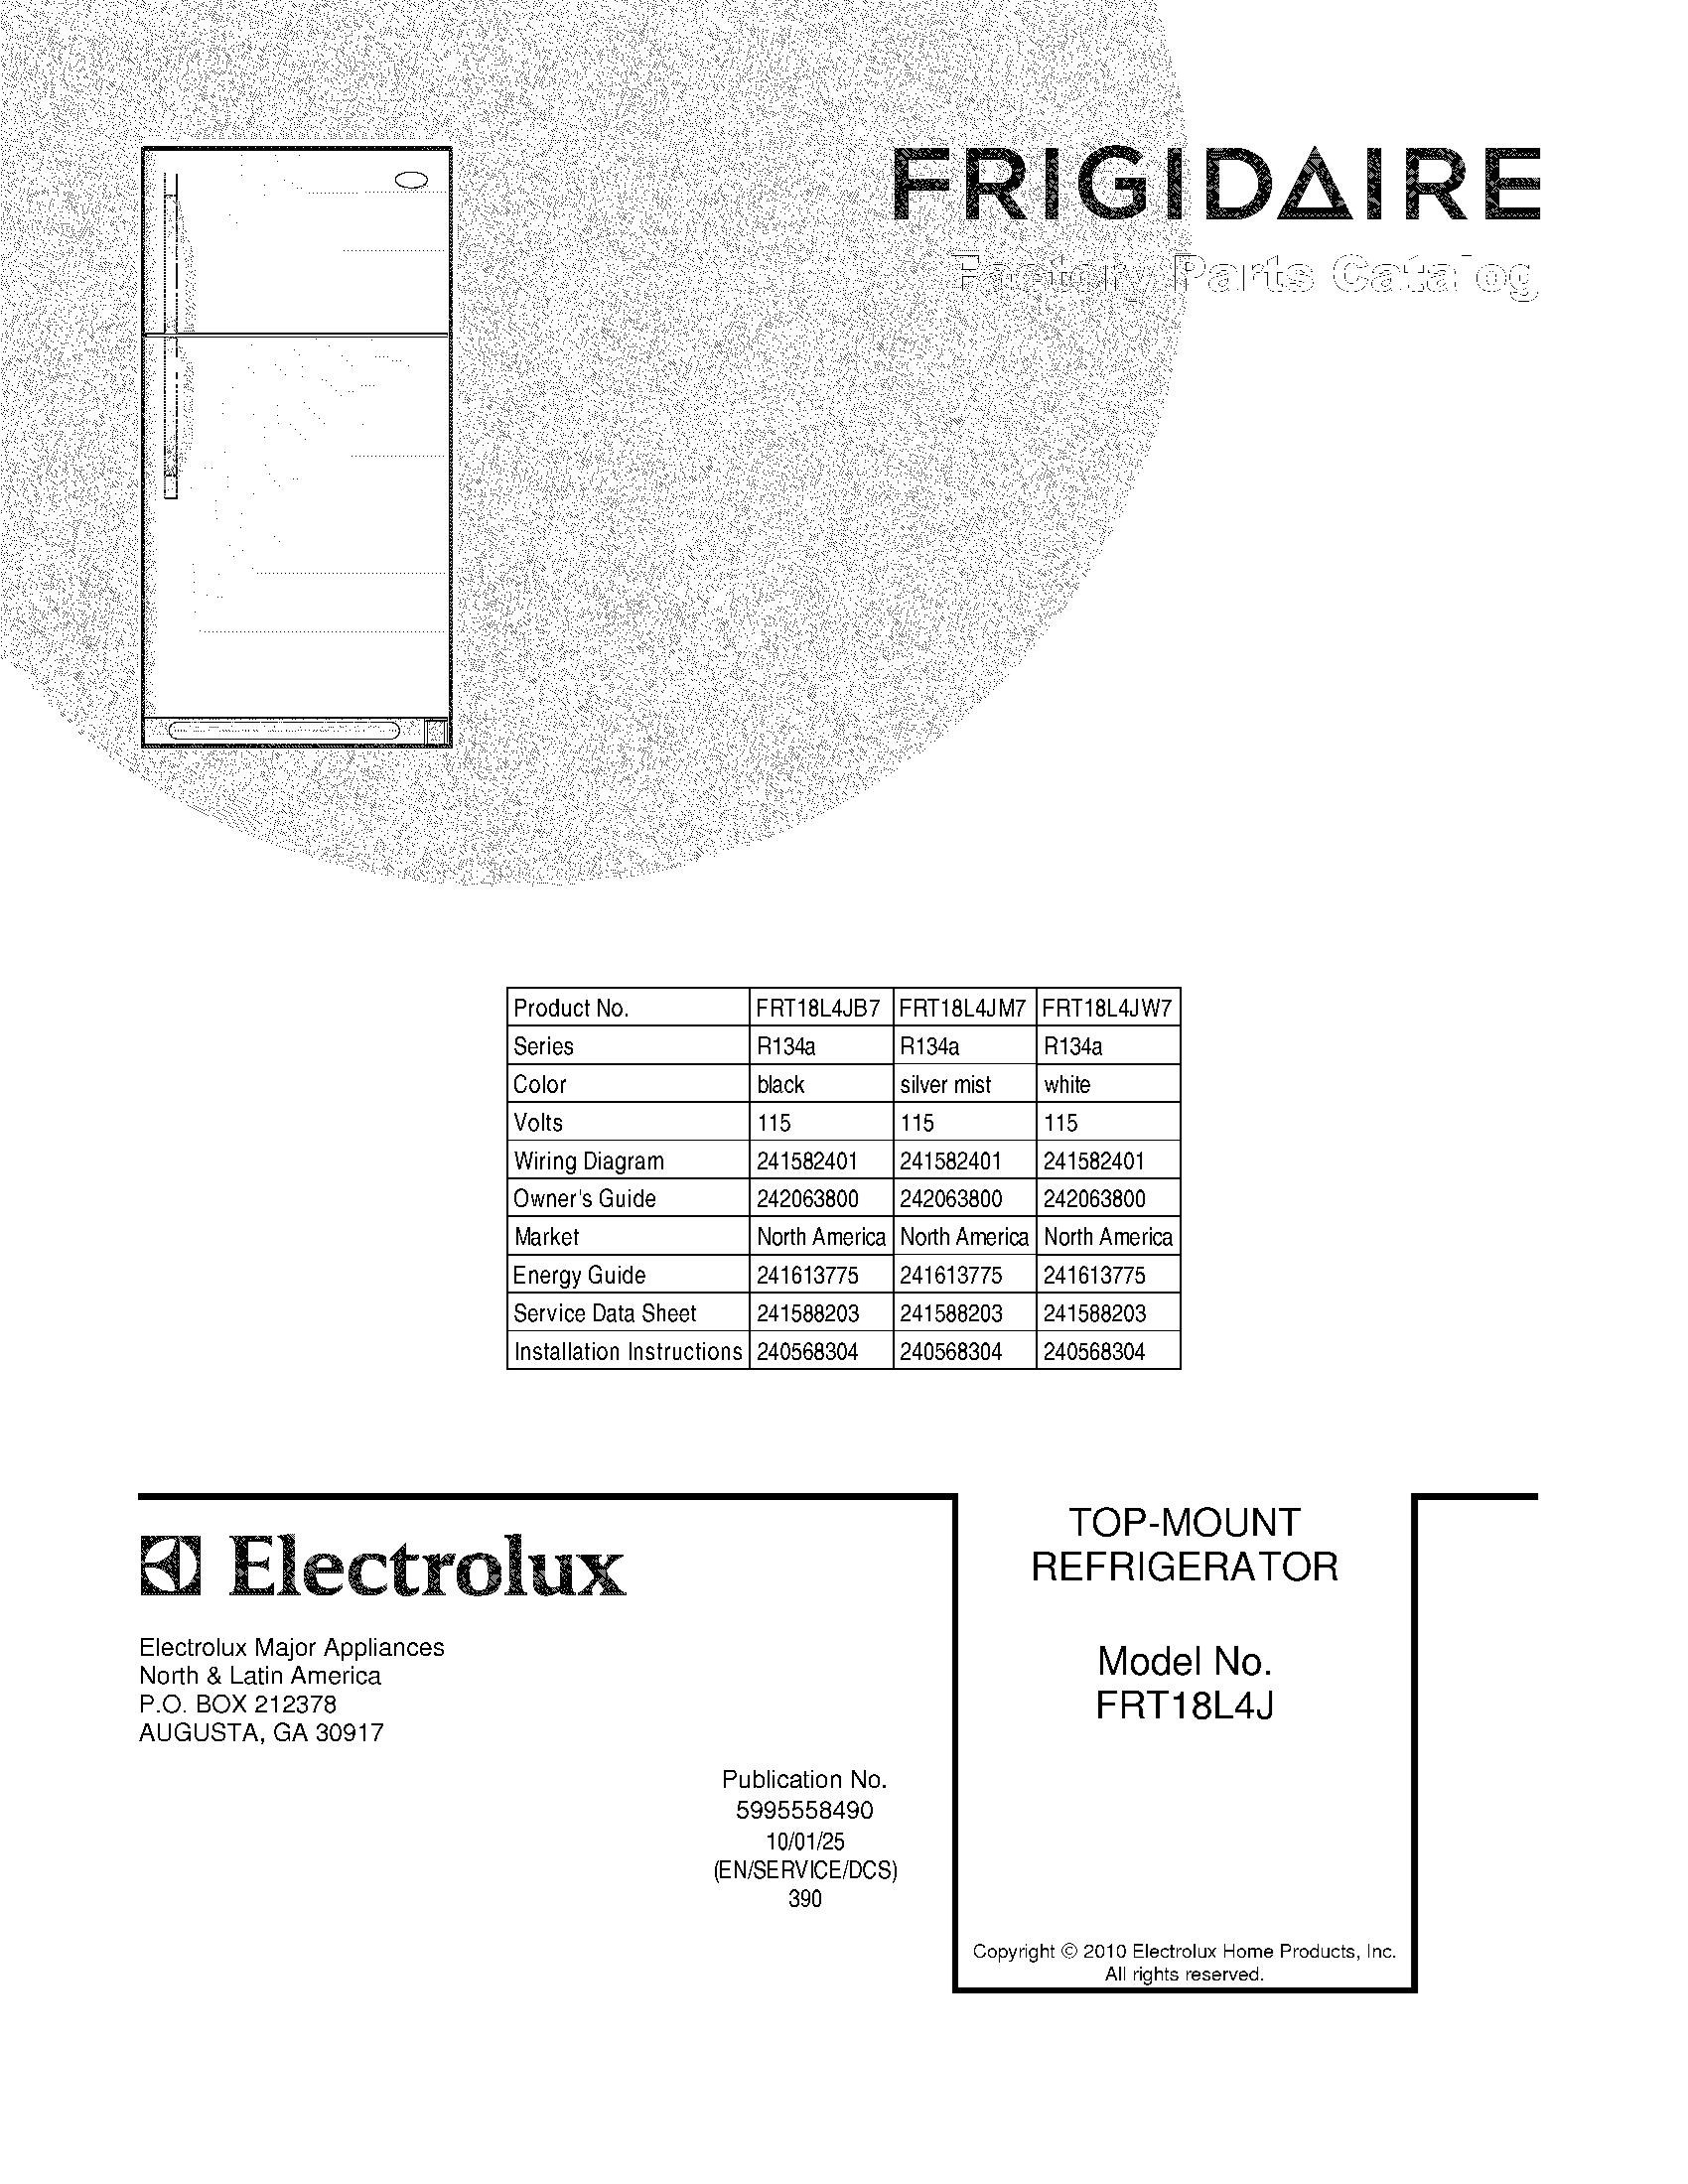 ElectroluxImg_19000101 20150717_00102196?width\=206 frigidaire refrigerator wiring schematic model frt18l4j frigidaire ice maker wiring diagram at gsmx.co